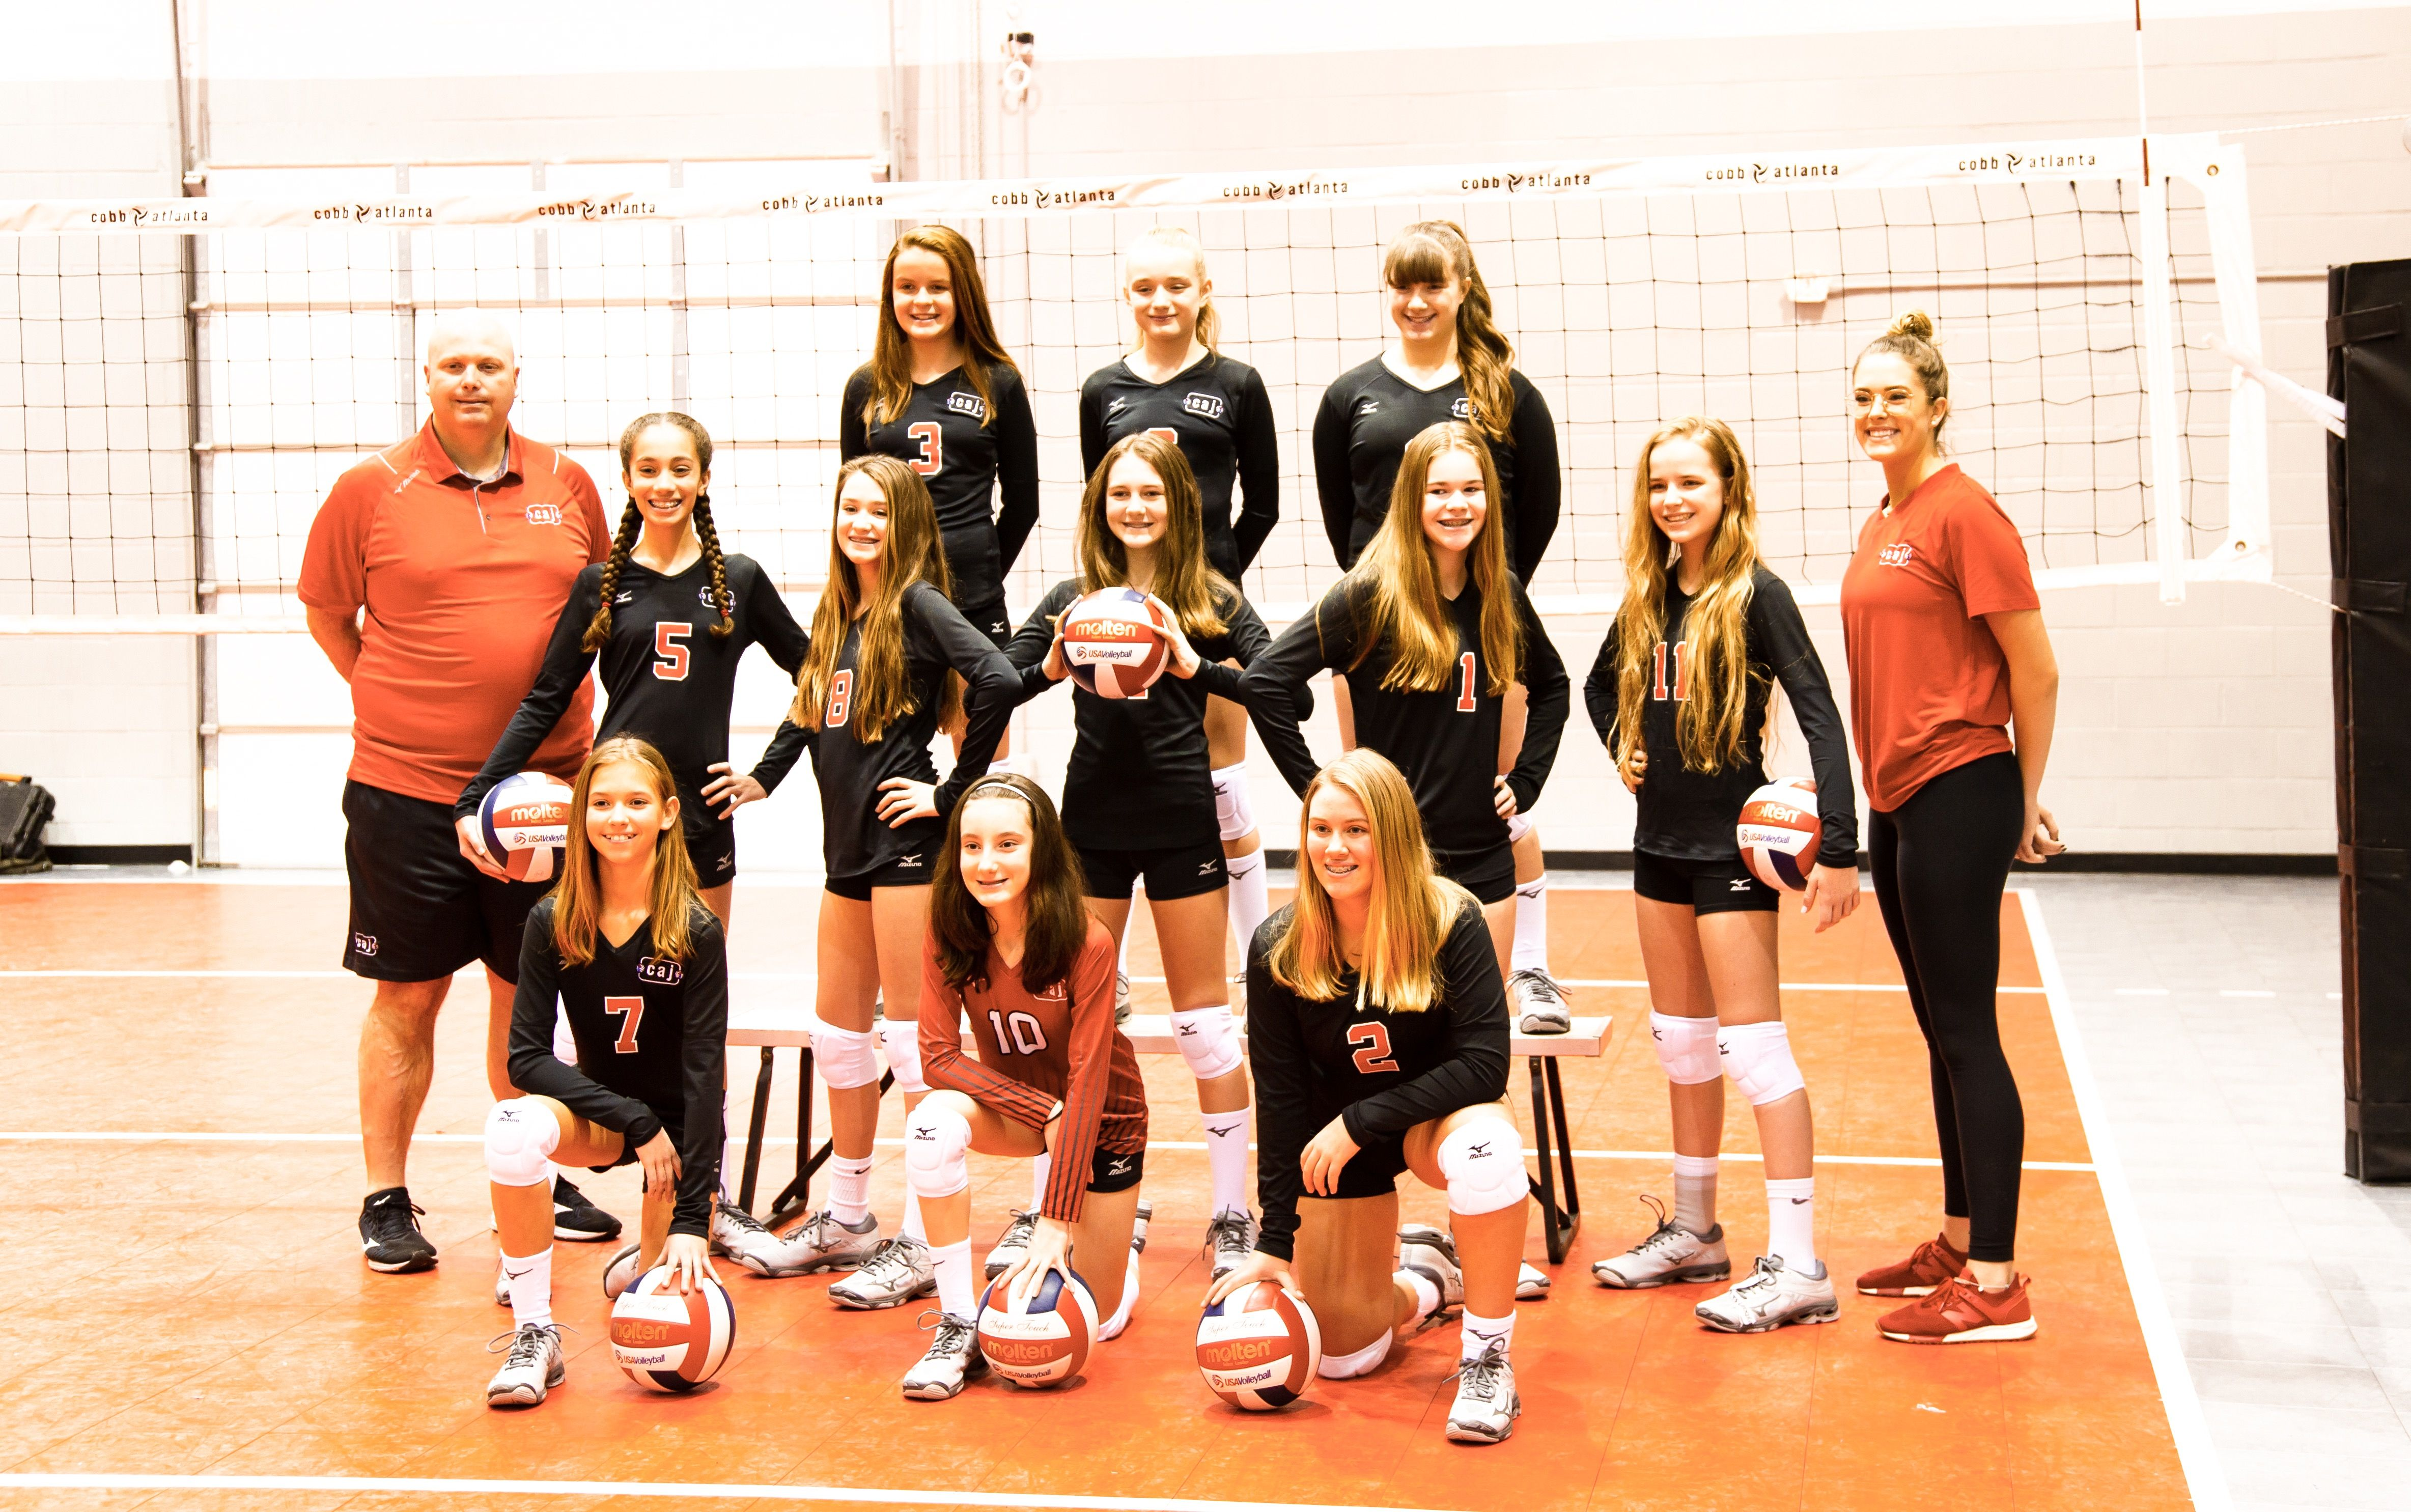 Pin By Siena Cary On Volleyball Volleyball Pictures Volleyball Inspiration Volleyball Photos